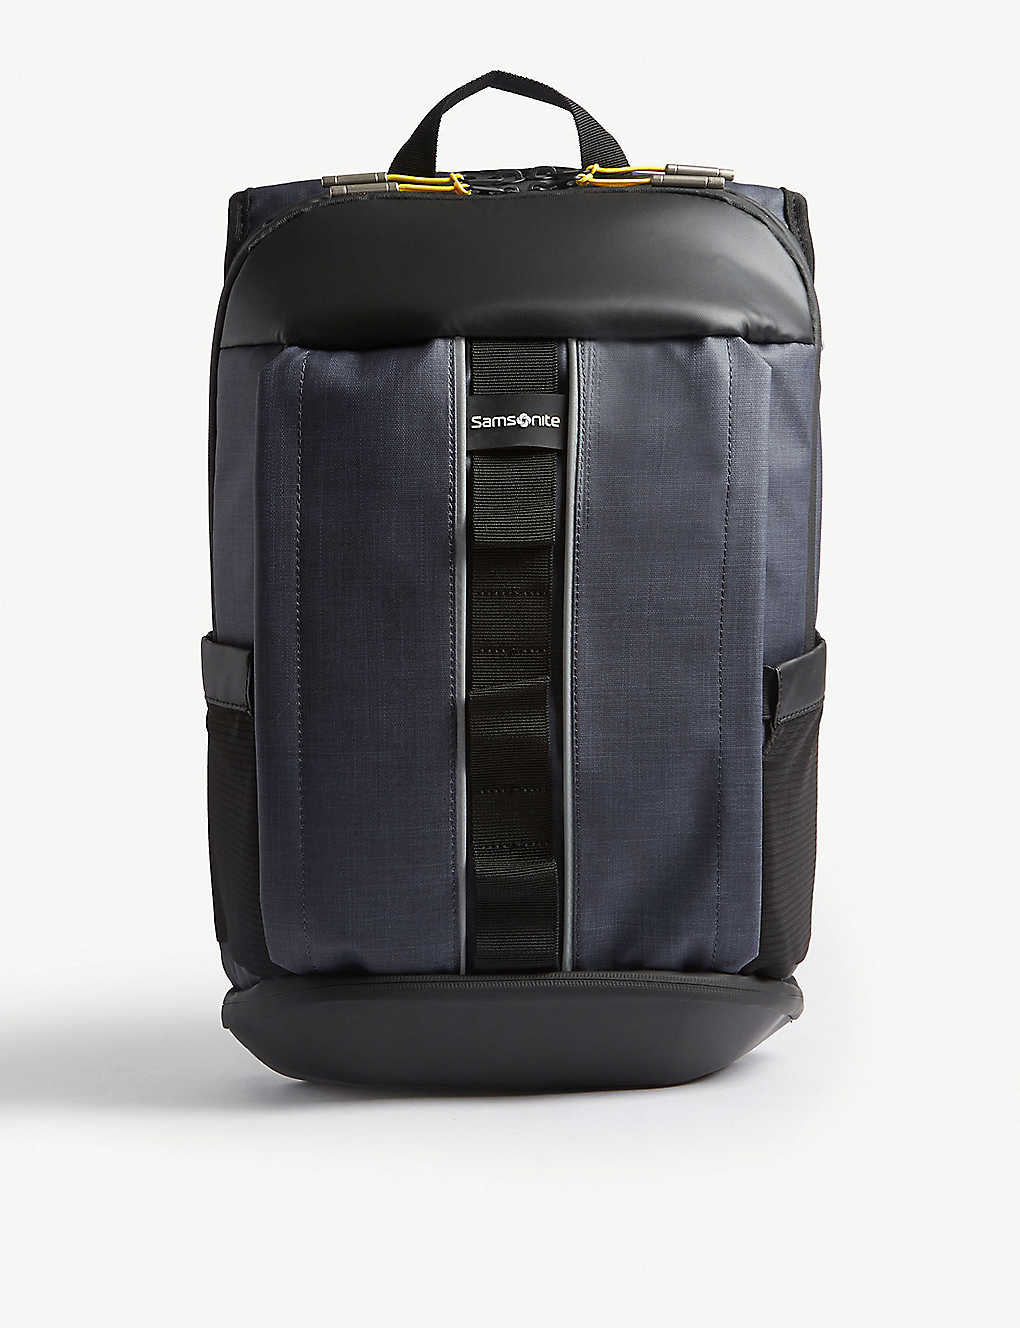 SAMSONITE: 2WM Laptop backpack 15.6""